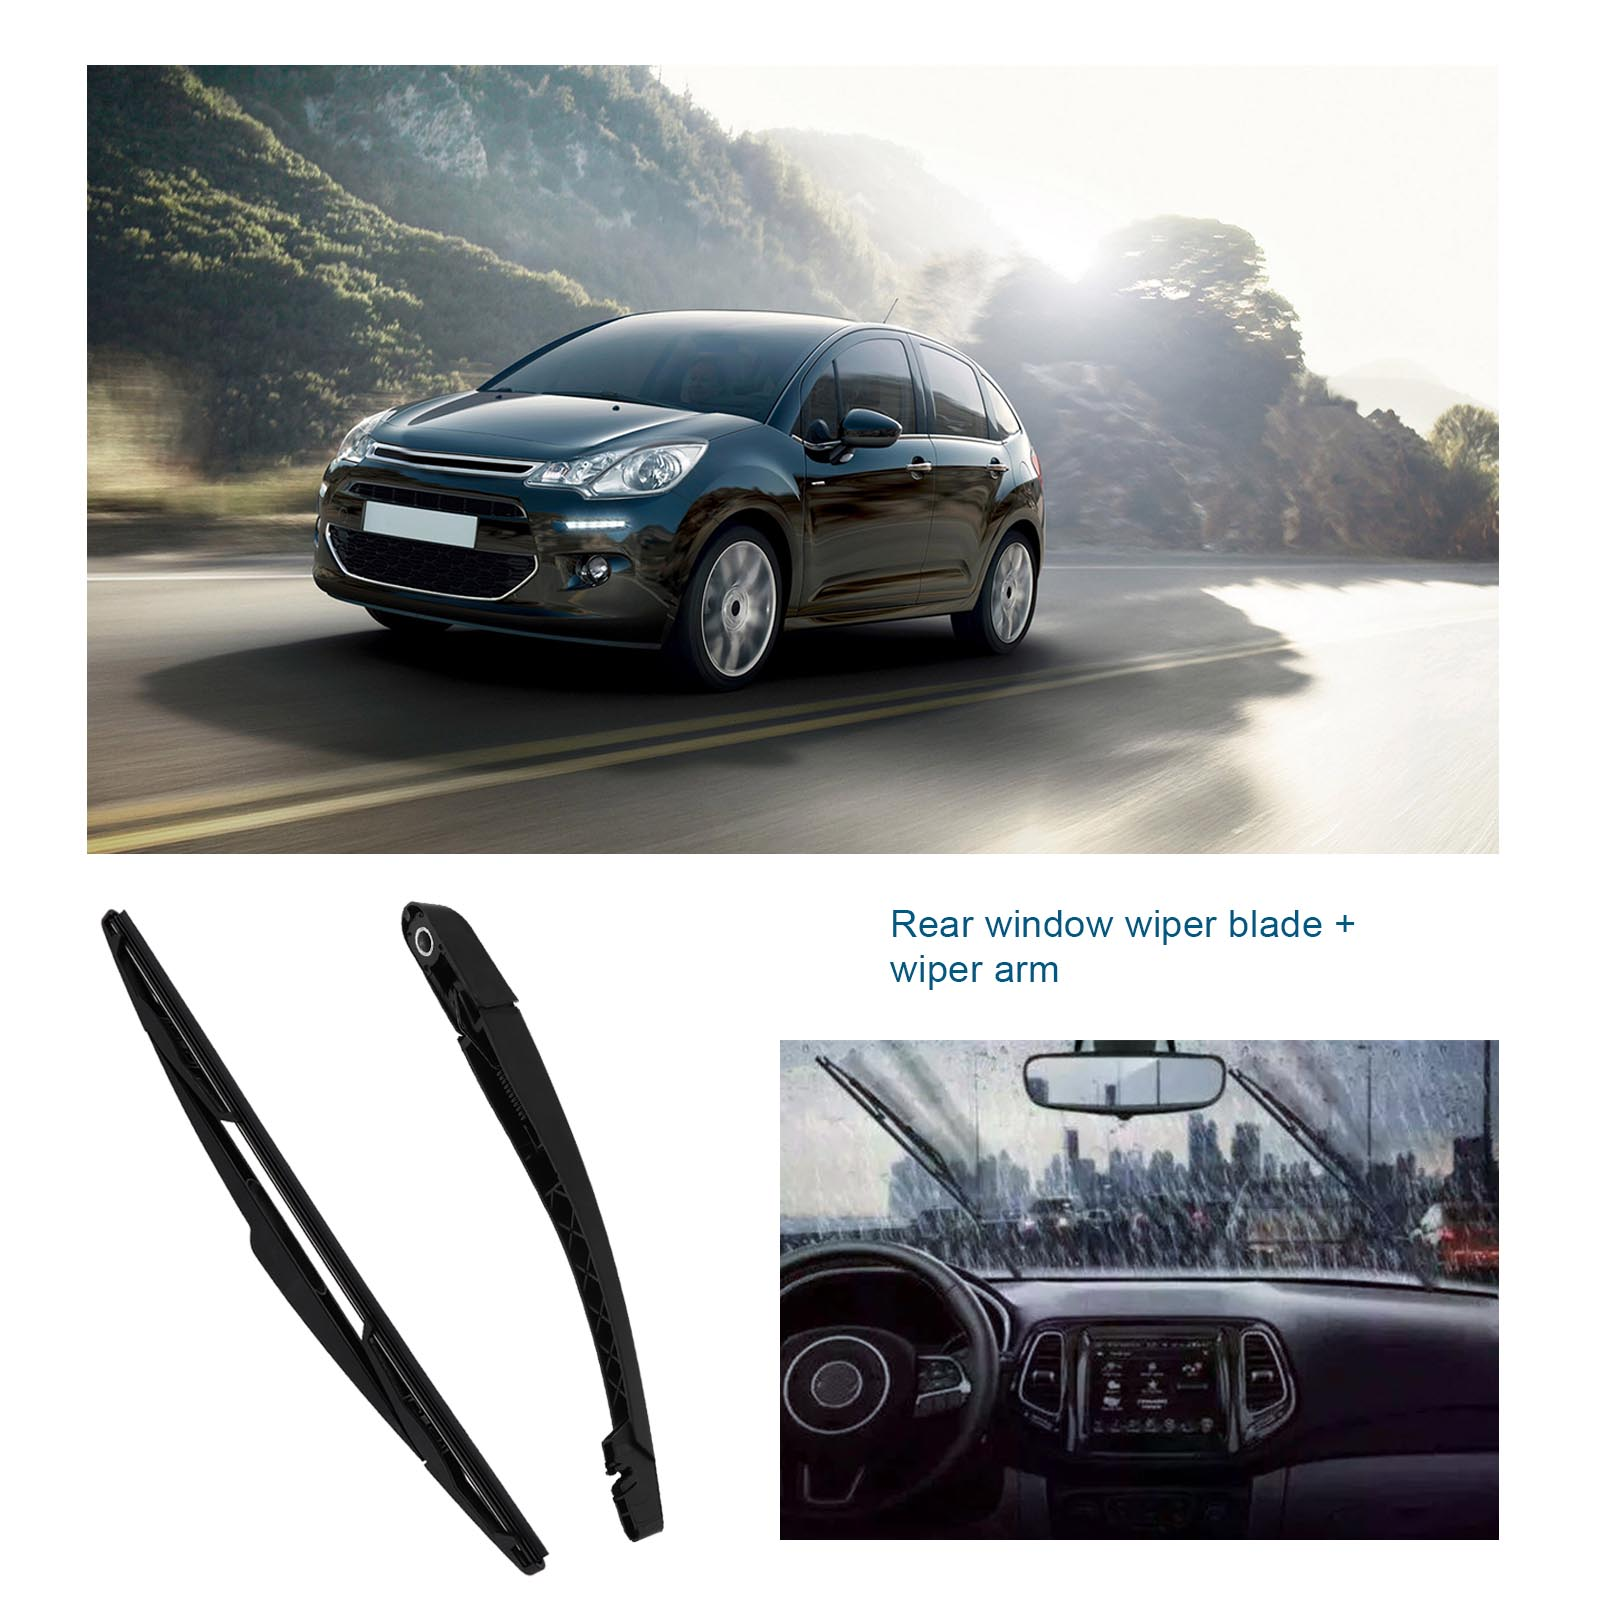 Replacement Wiper Blades : Replacement windscreen rear wiper blade arm set for